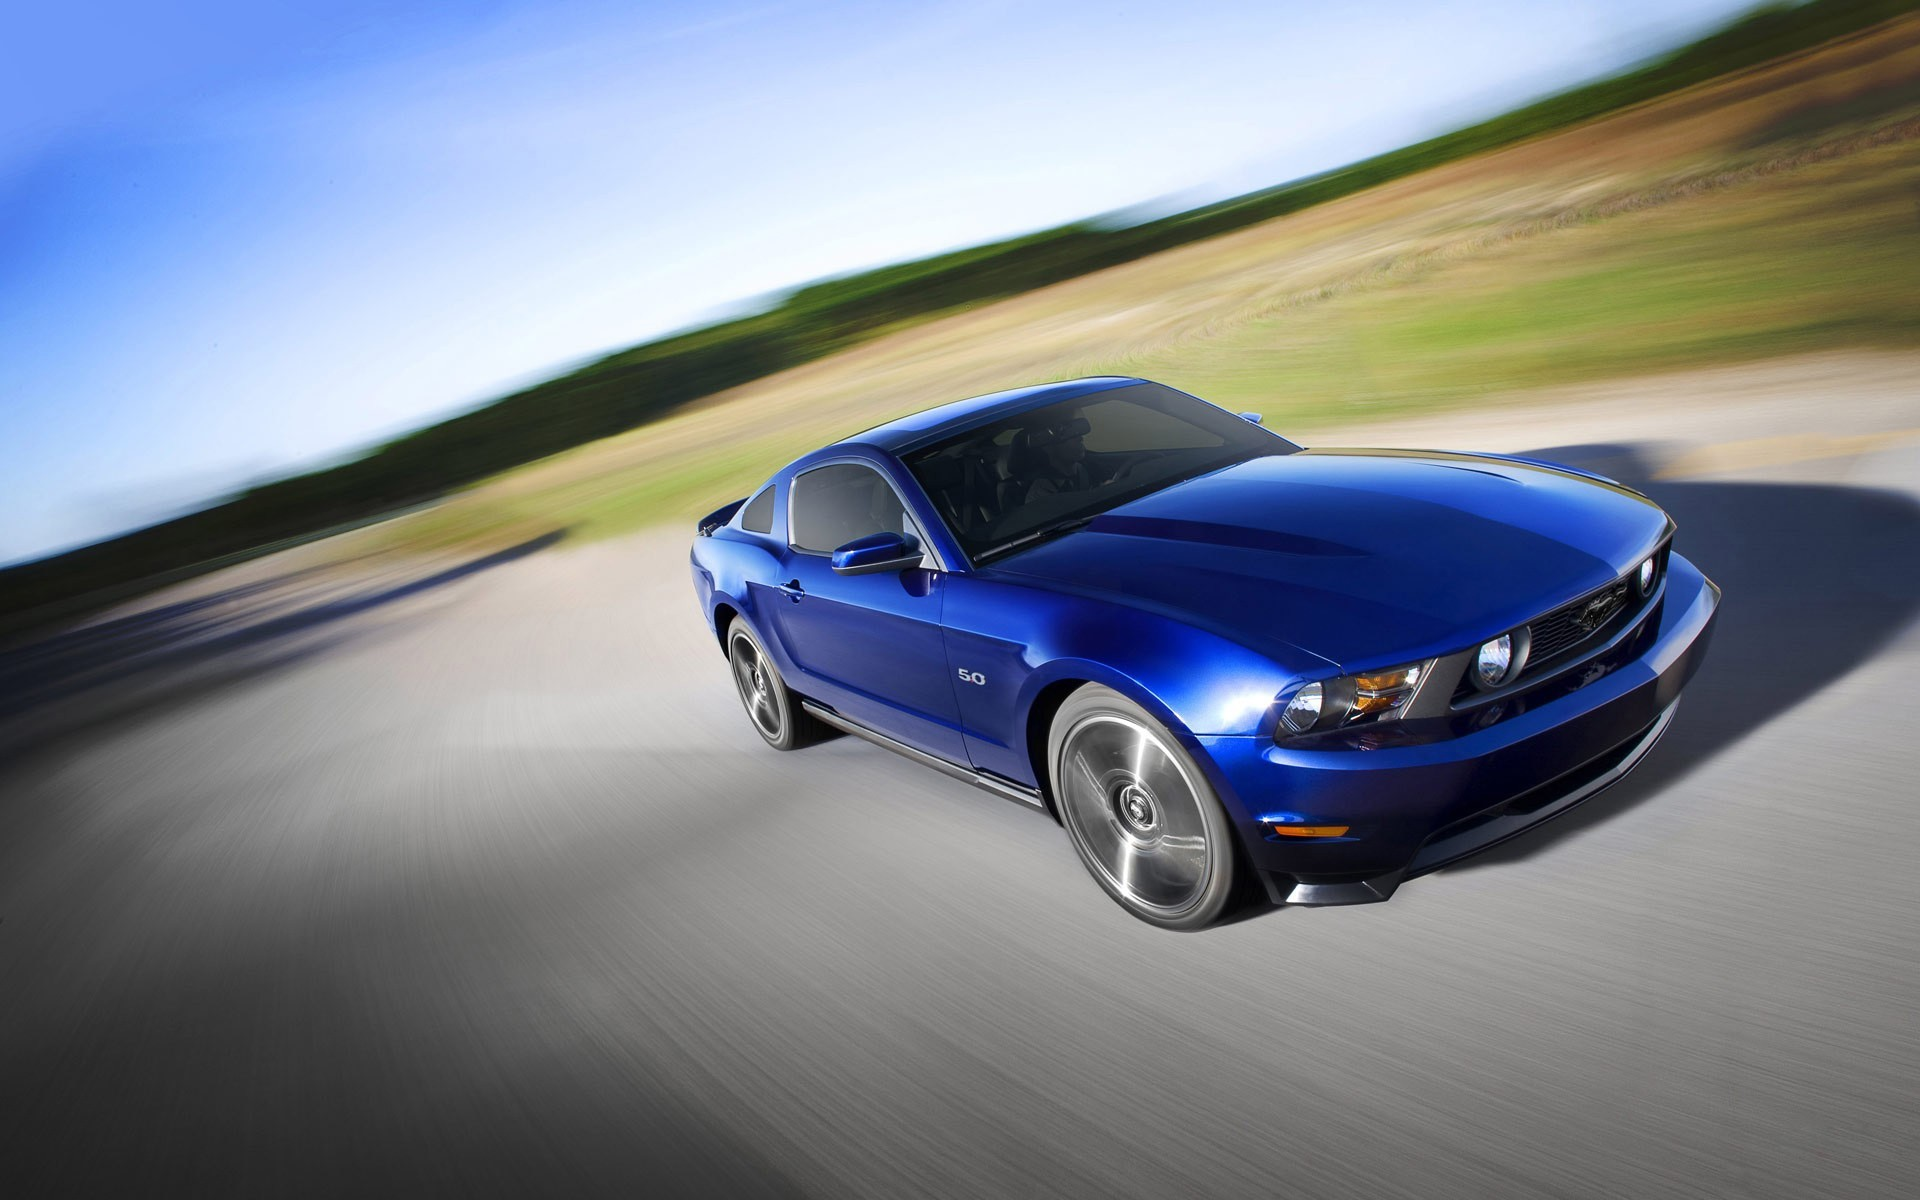 cars muscle cars vehicles HD Wallpaper